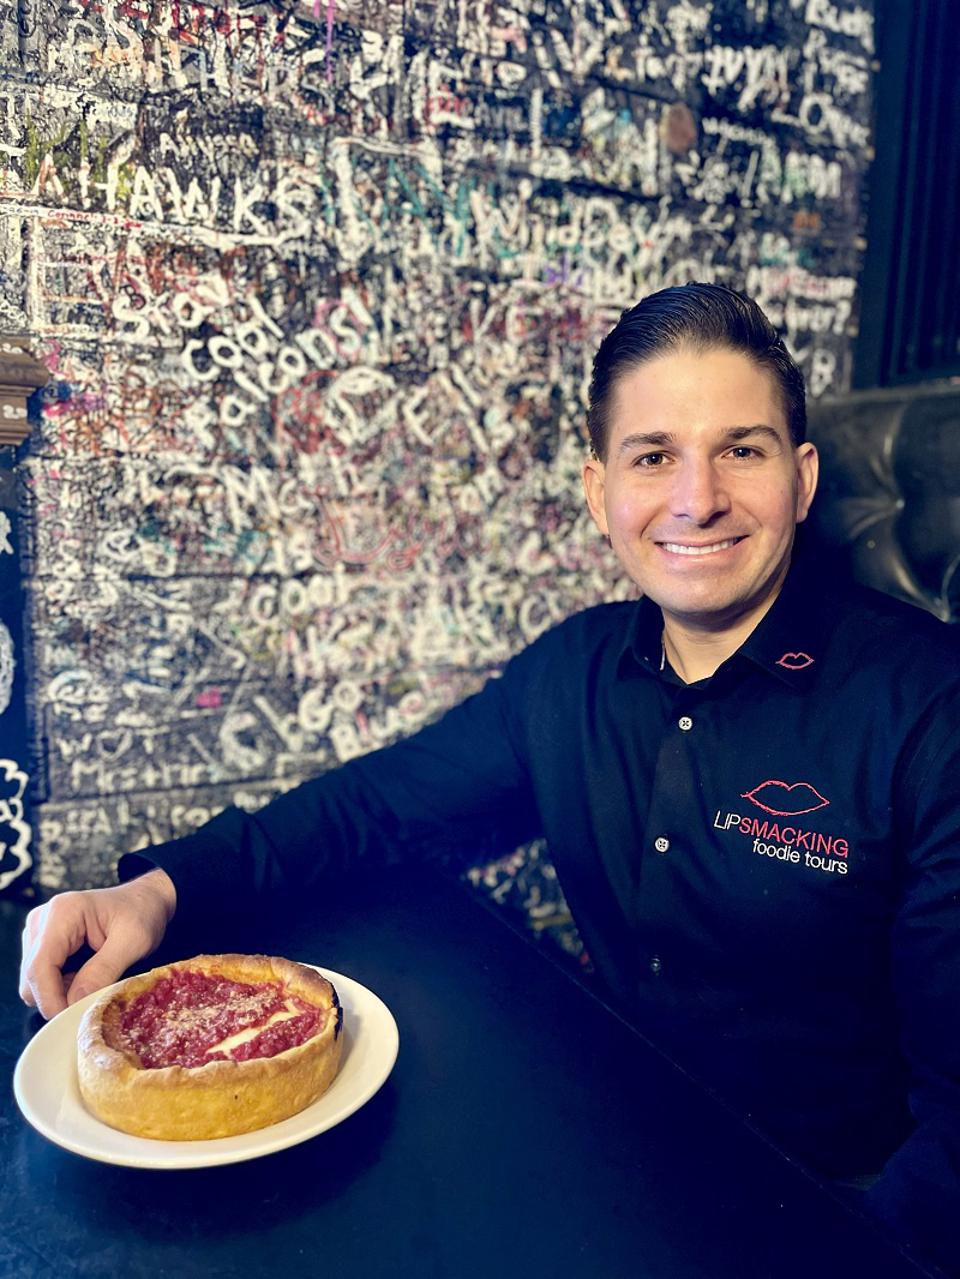 Don Contursi with Chicago deep dish pizza